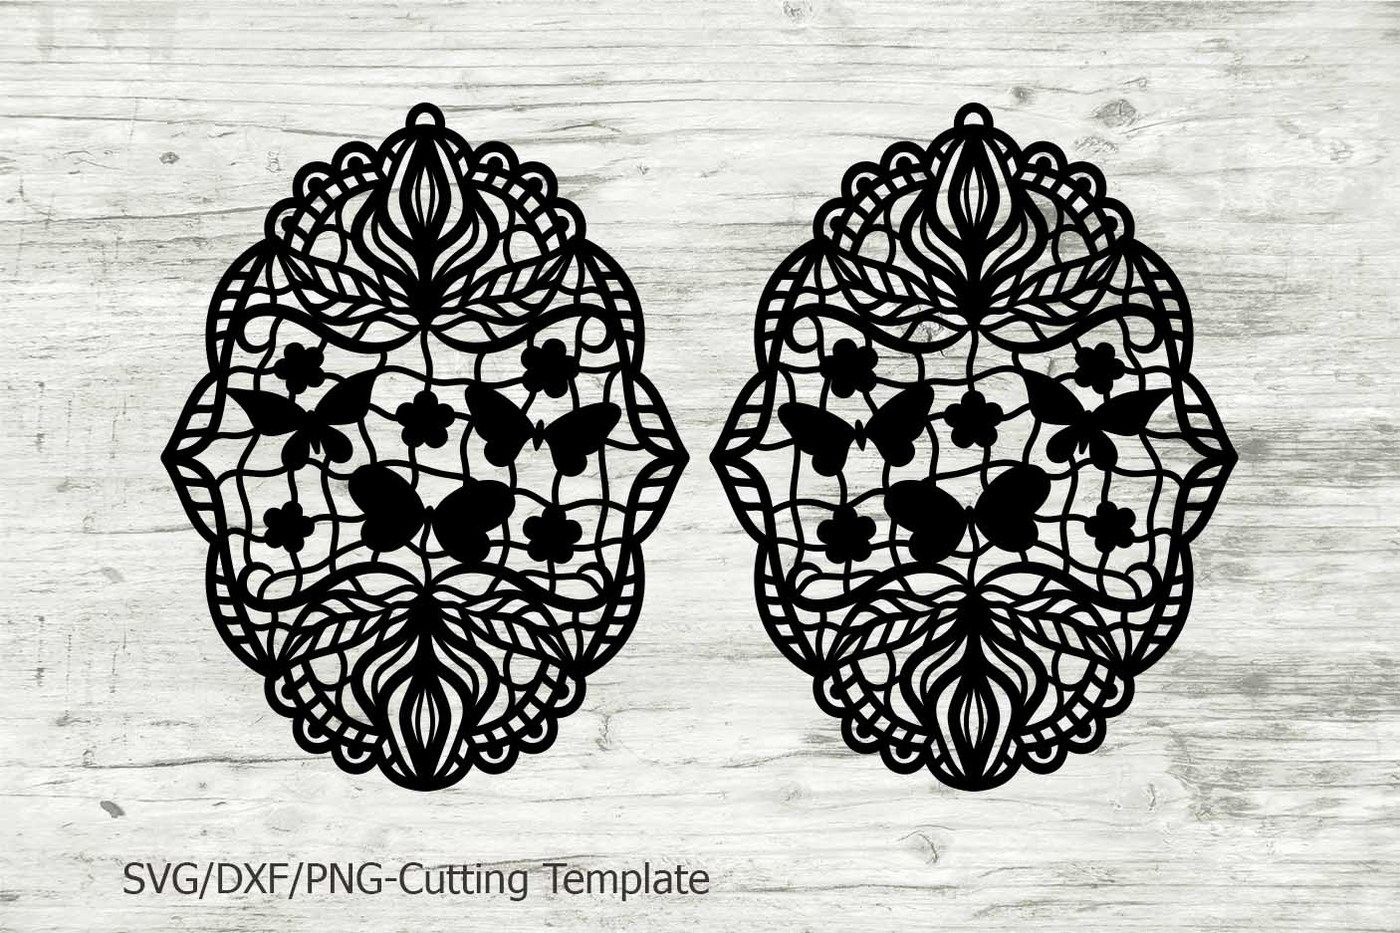 Earrings Pendant Cutting Laser Template Svg File Lace Floral